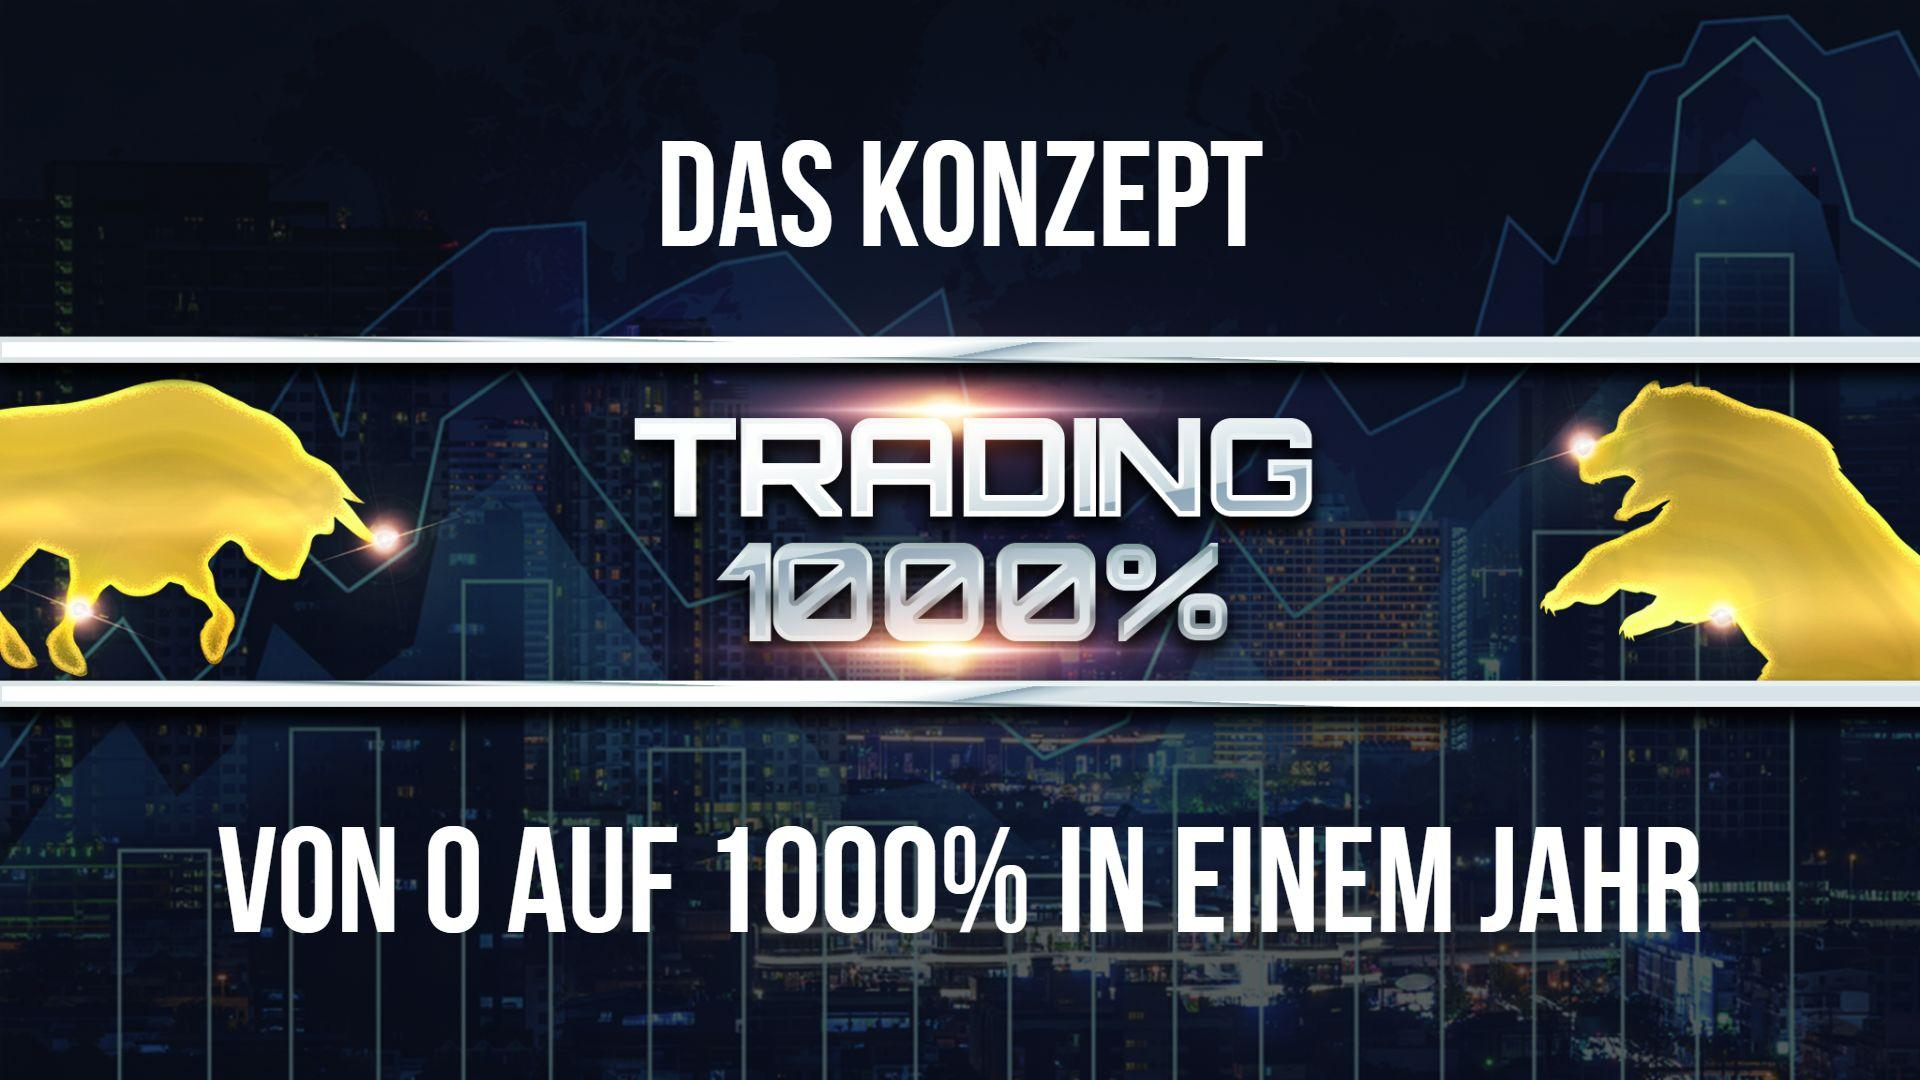 Trading 1000%